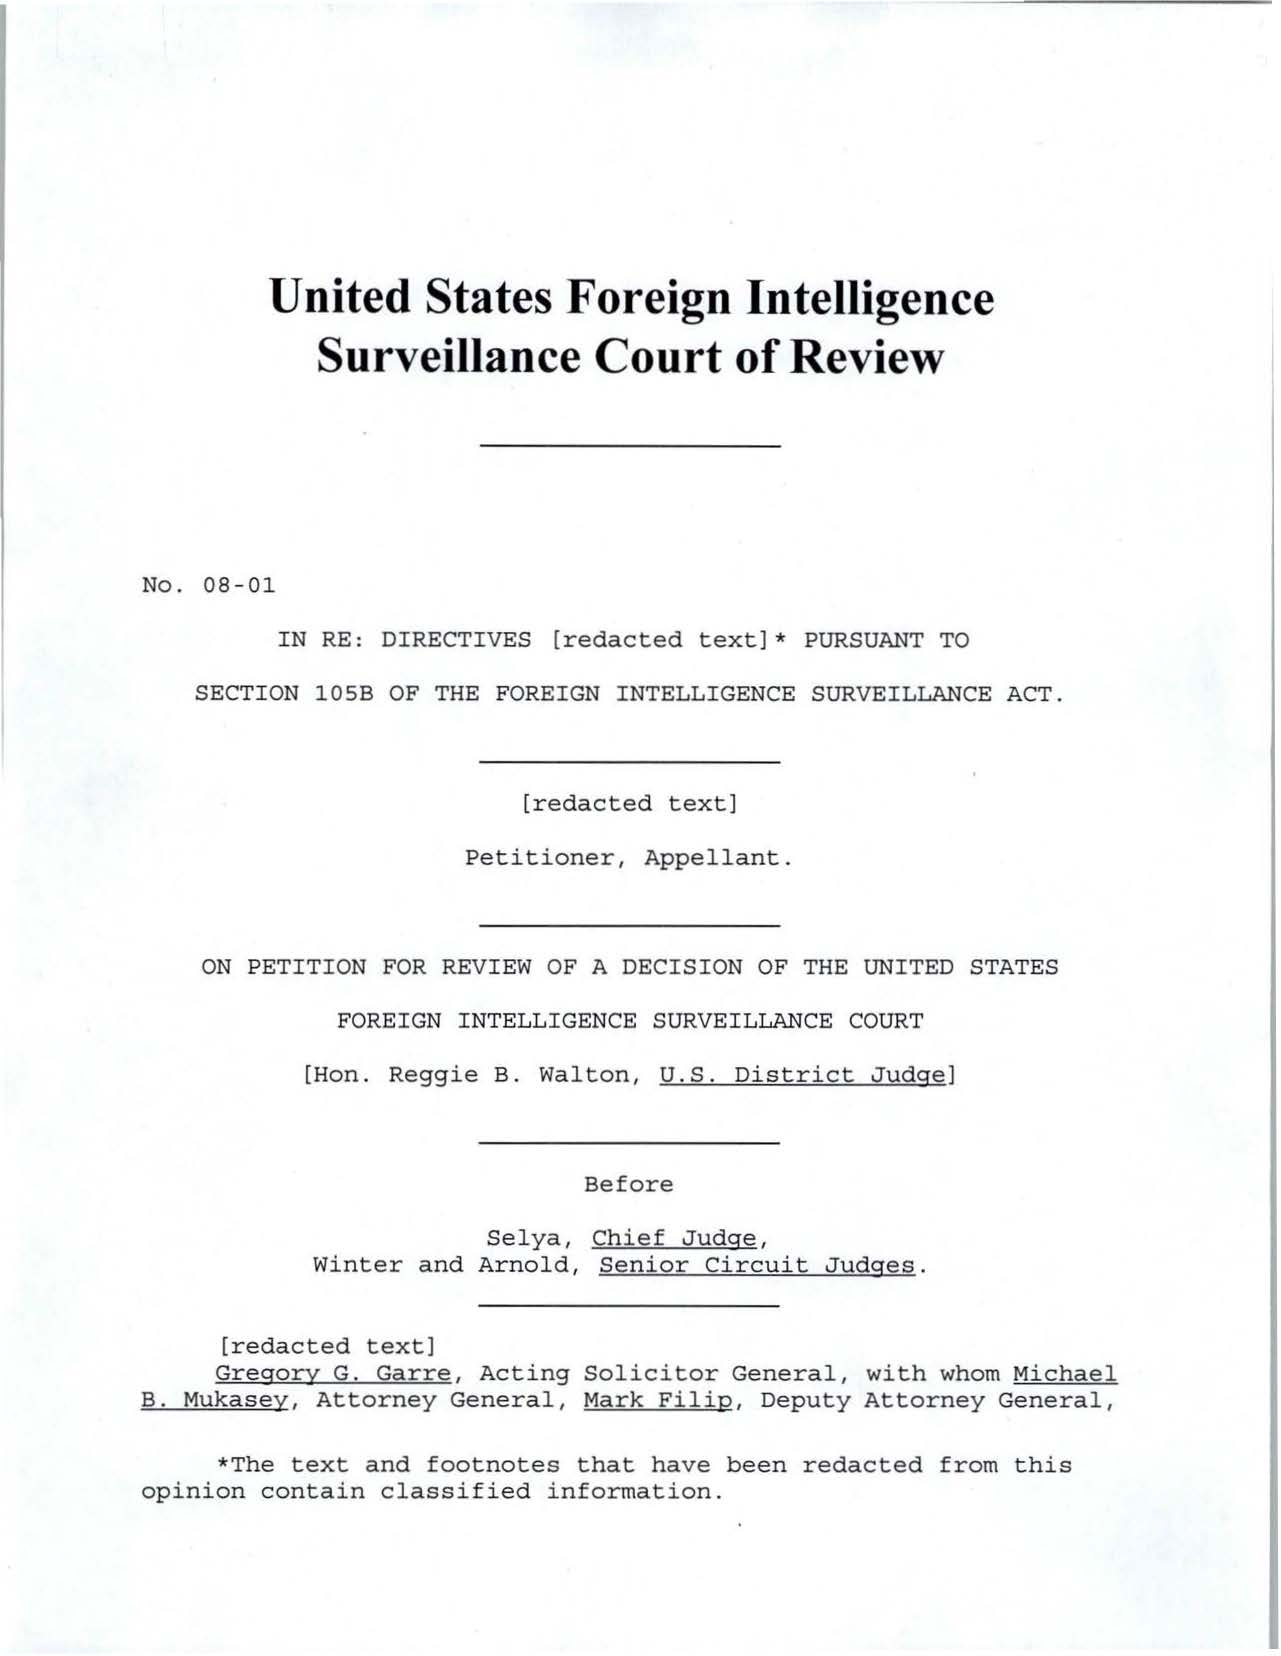 United States Foreign Intelligence Surveillance Court of Review No. 08-01 IN RE: DIRECTIVES [redacted text]* PURSUANT TO SECTION losb OF THE FOREIGN INTELLIGENCE SURVEILLANCE ACT.